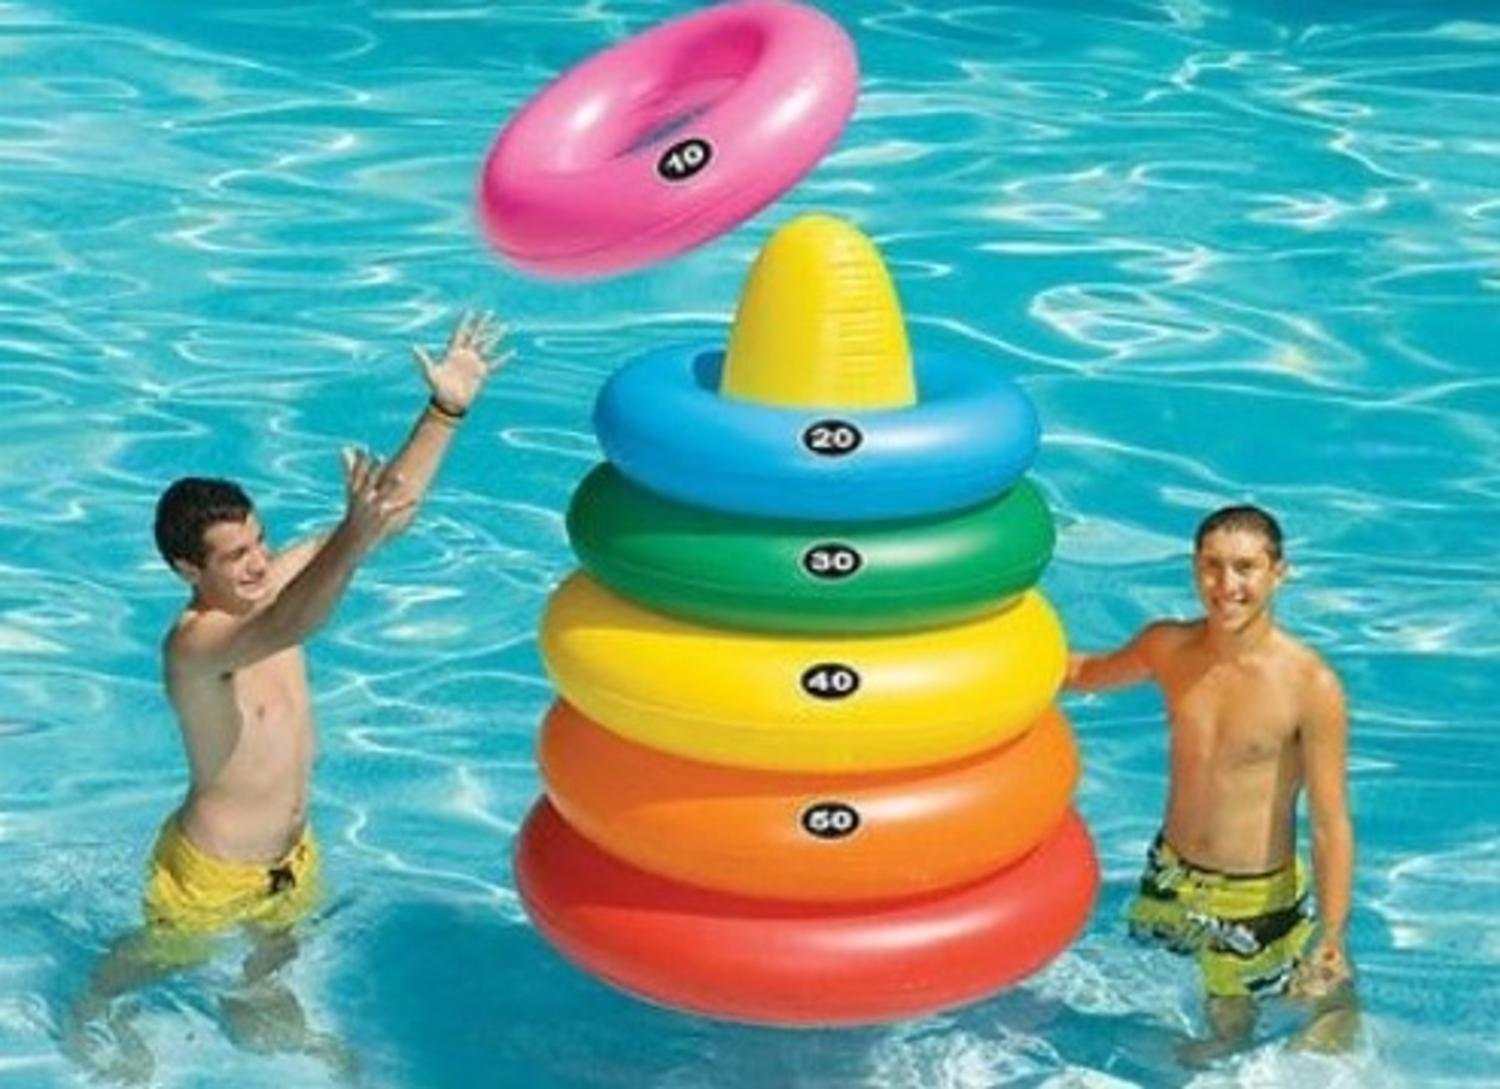 5' Water Sports Inflatable Giant Ring Toss Target Swimming Pool Game by Swim Central